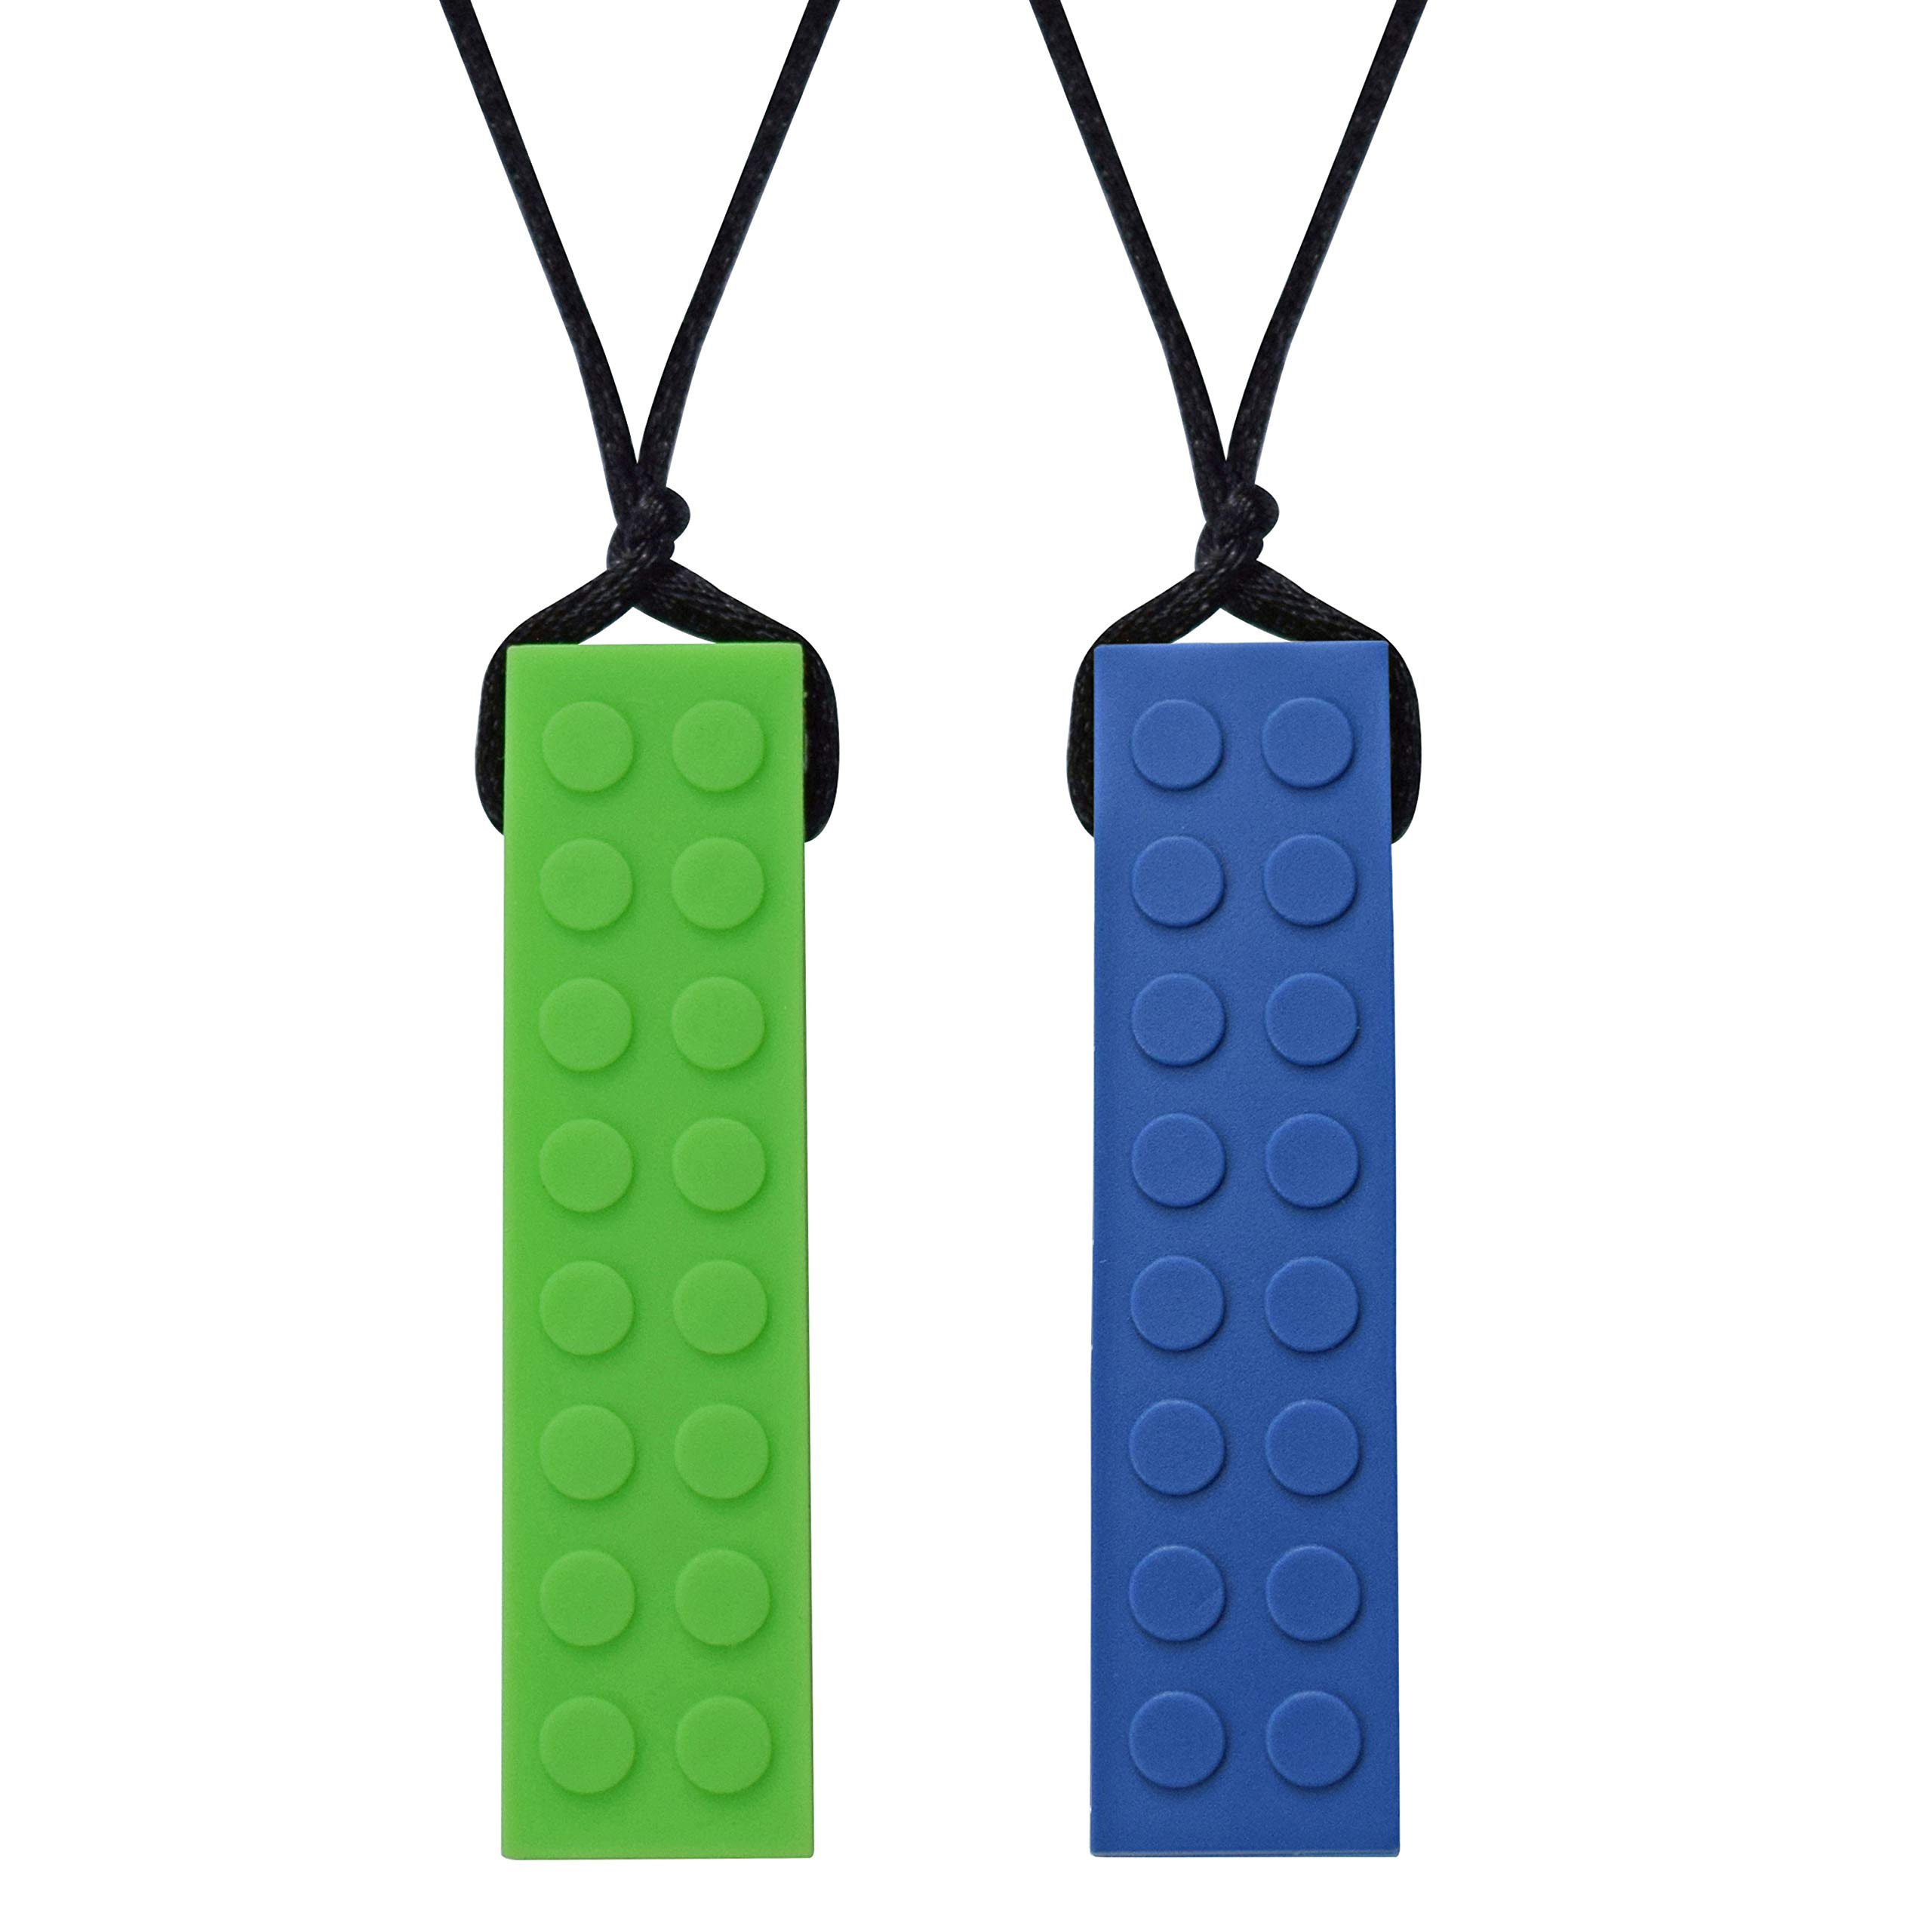 Munchables Chewelry - Chewable Sensory Chew Blockz Necklace (Navy & Green)